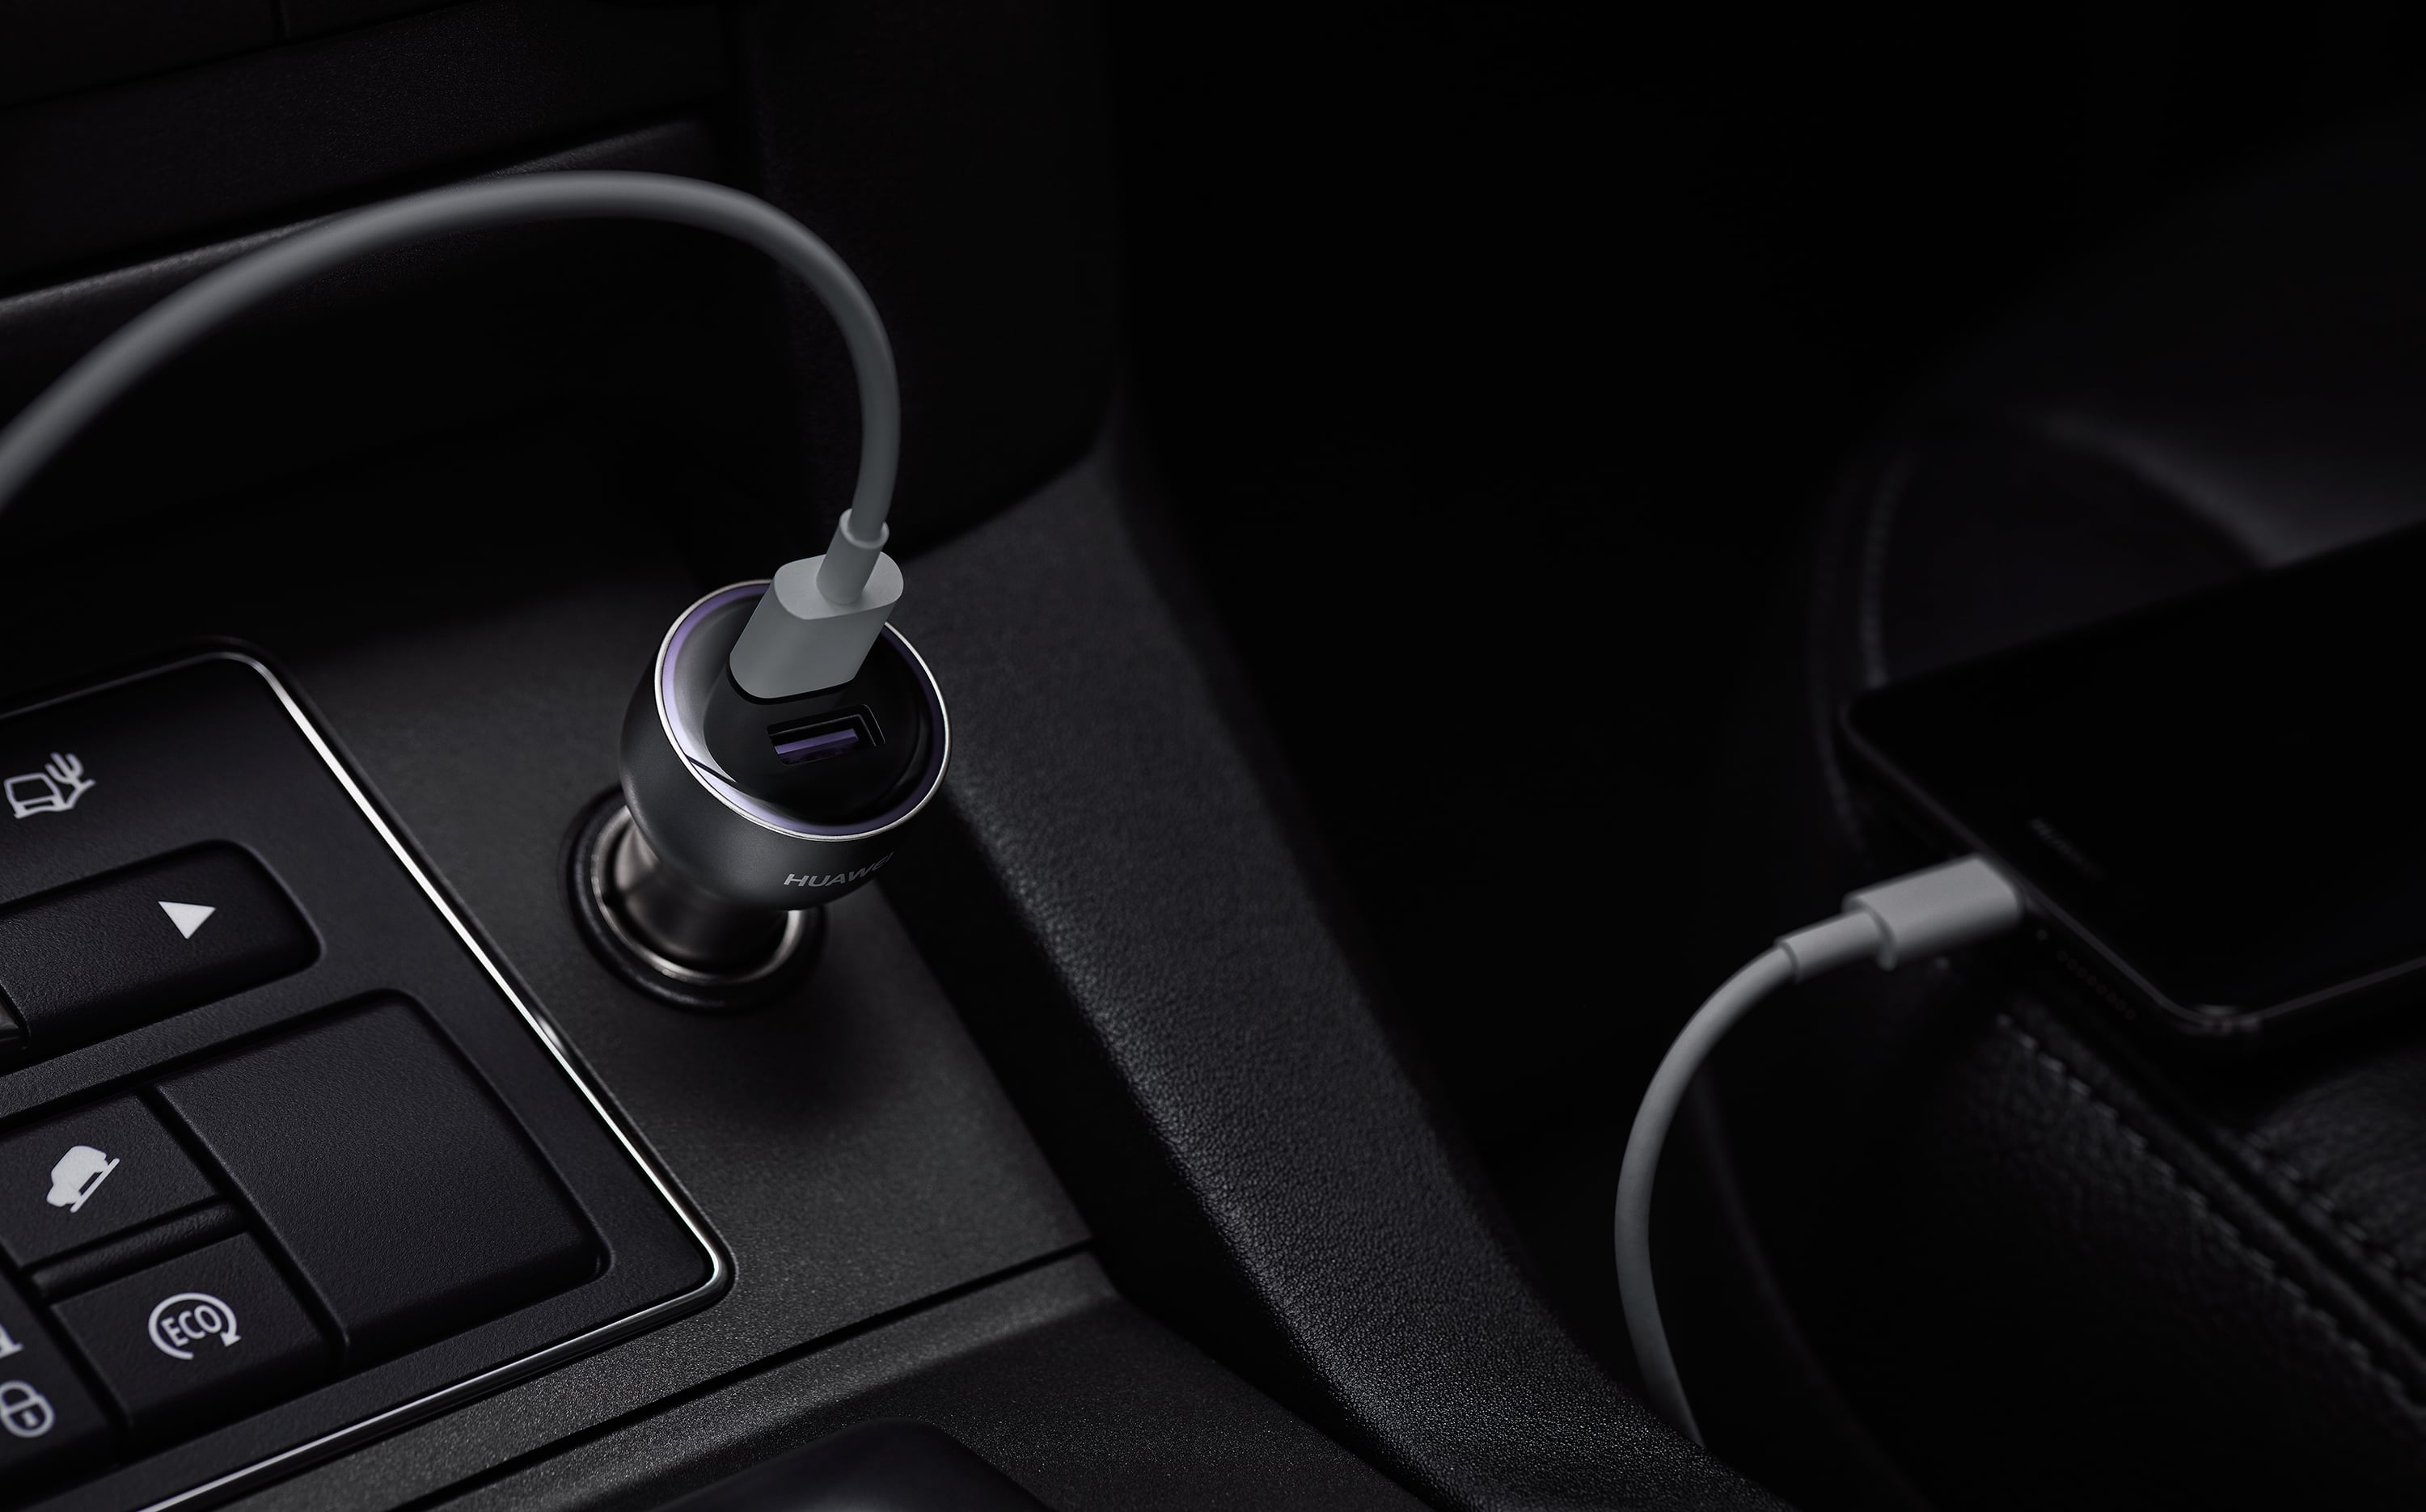 HUAWEI AP38 SuperCharge car charger.